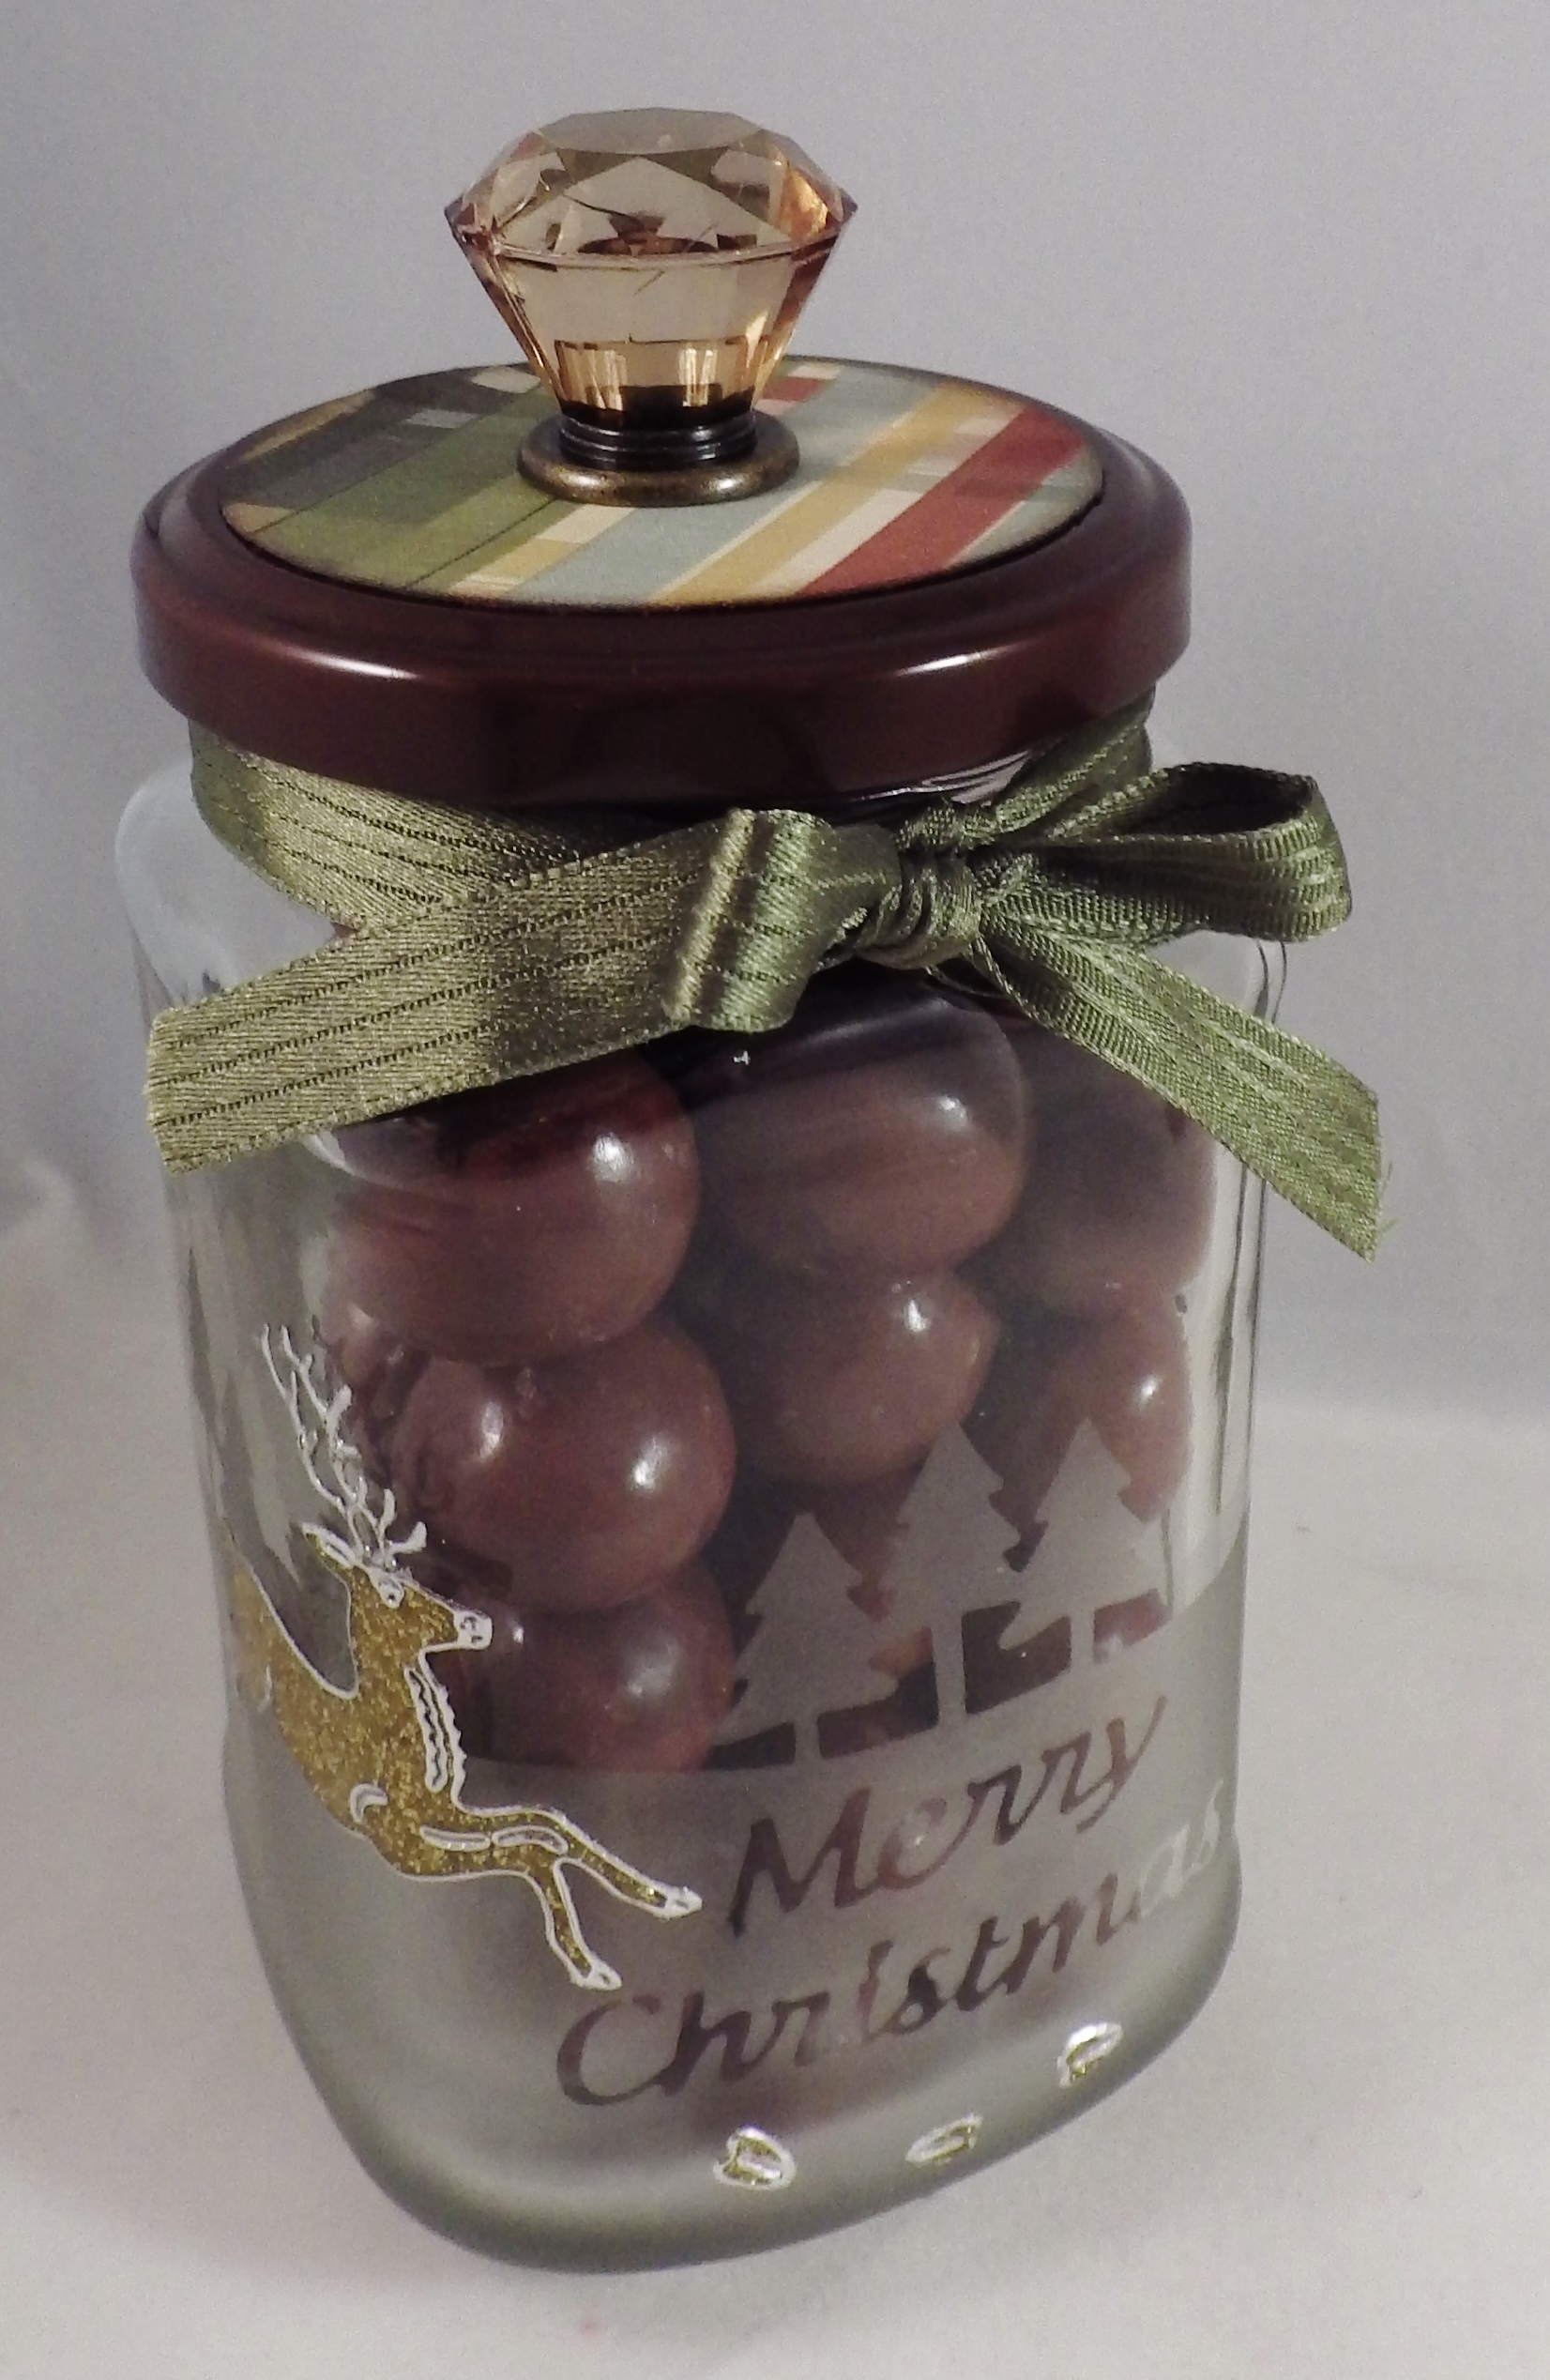 xmas jar by candy spiegel8